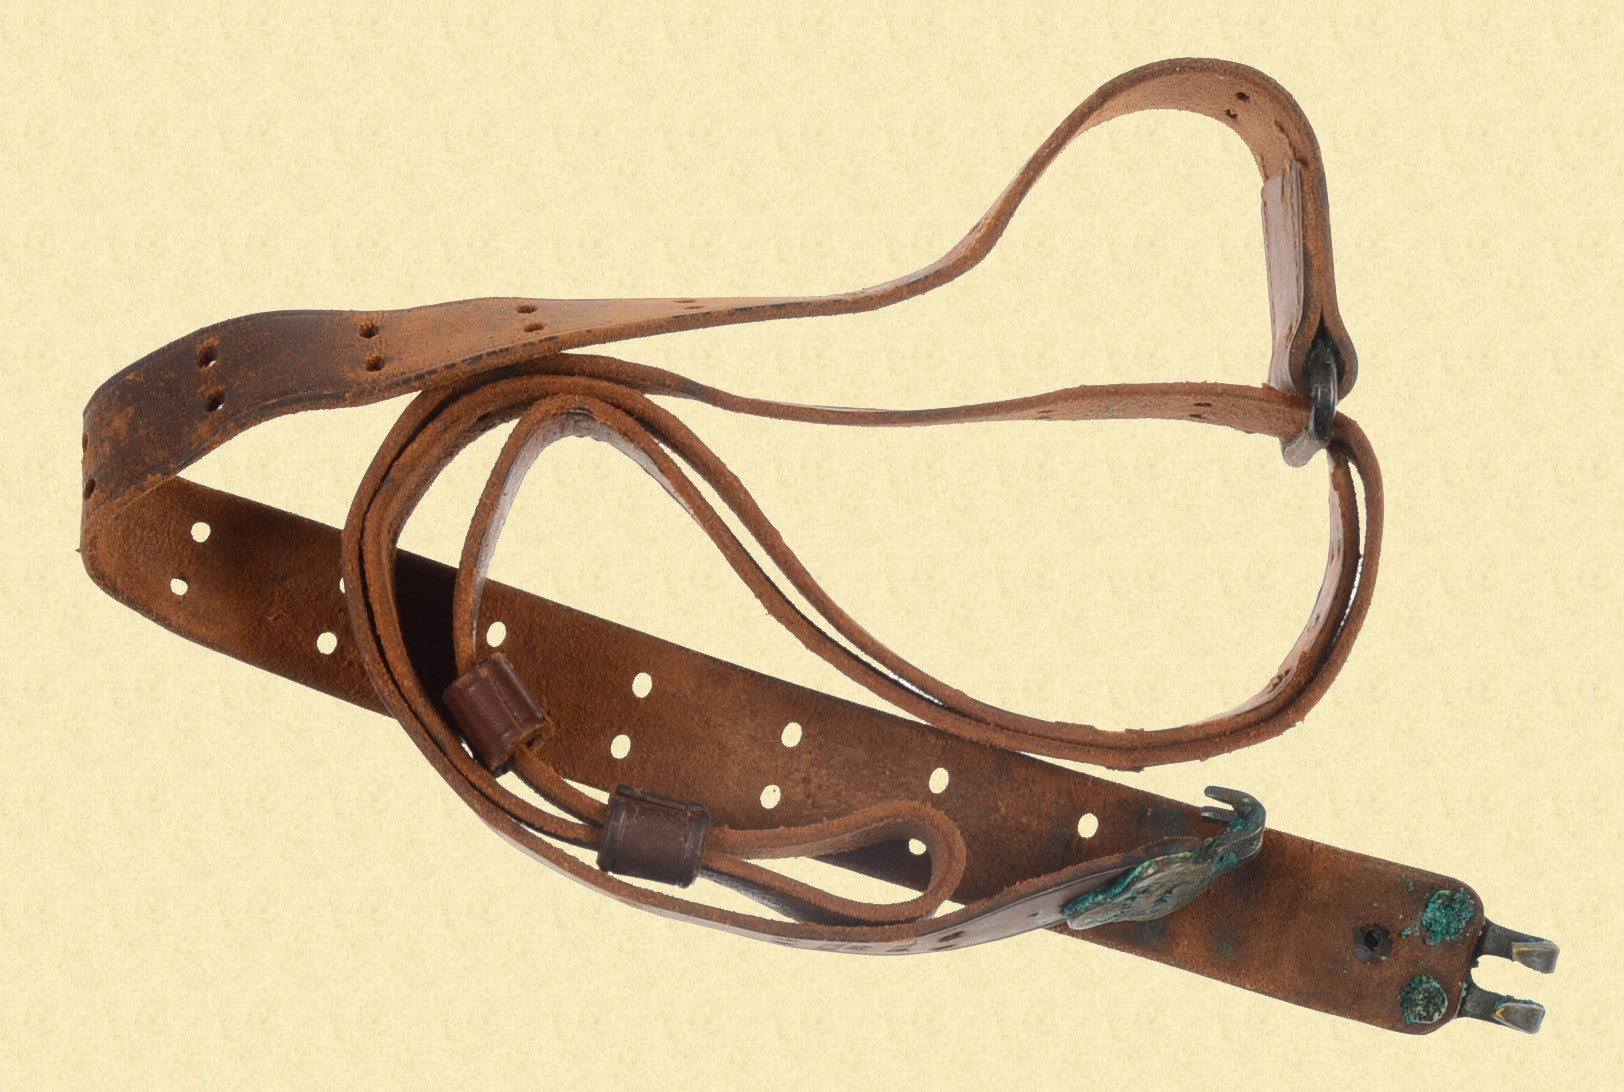 U.S. M1907 LEATHER RIFLE SLING